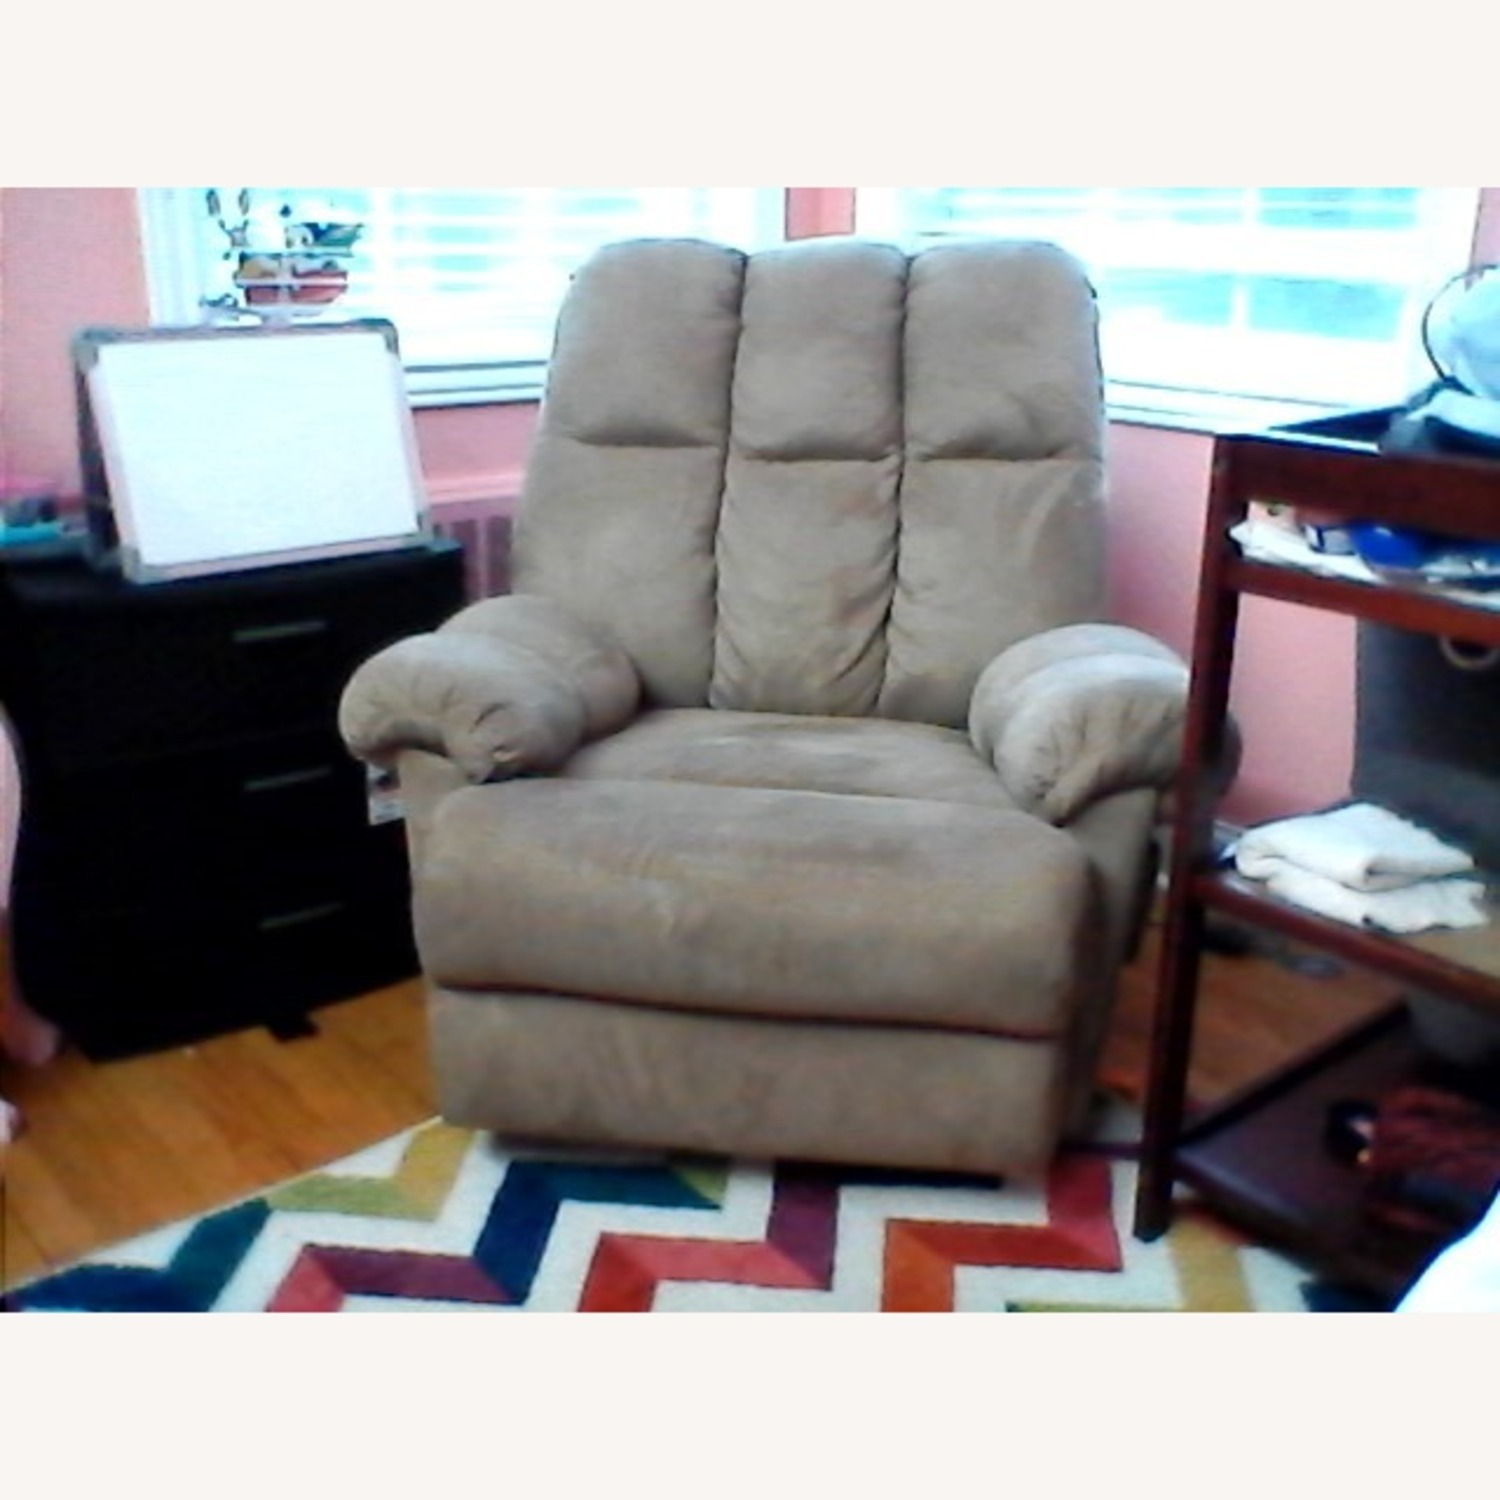 Rocking Chair Nursing and Recliner 2 in 1 - image-5